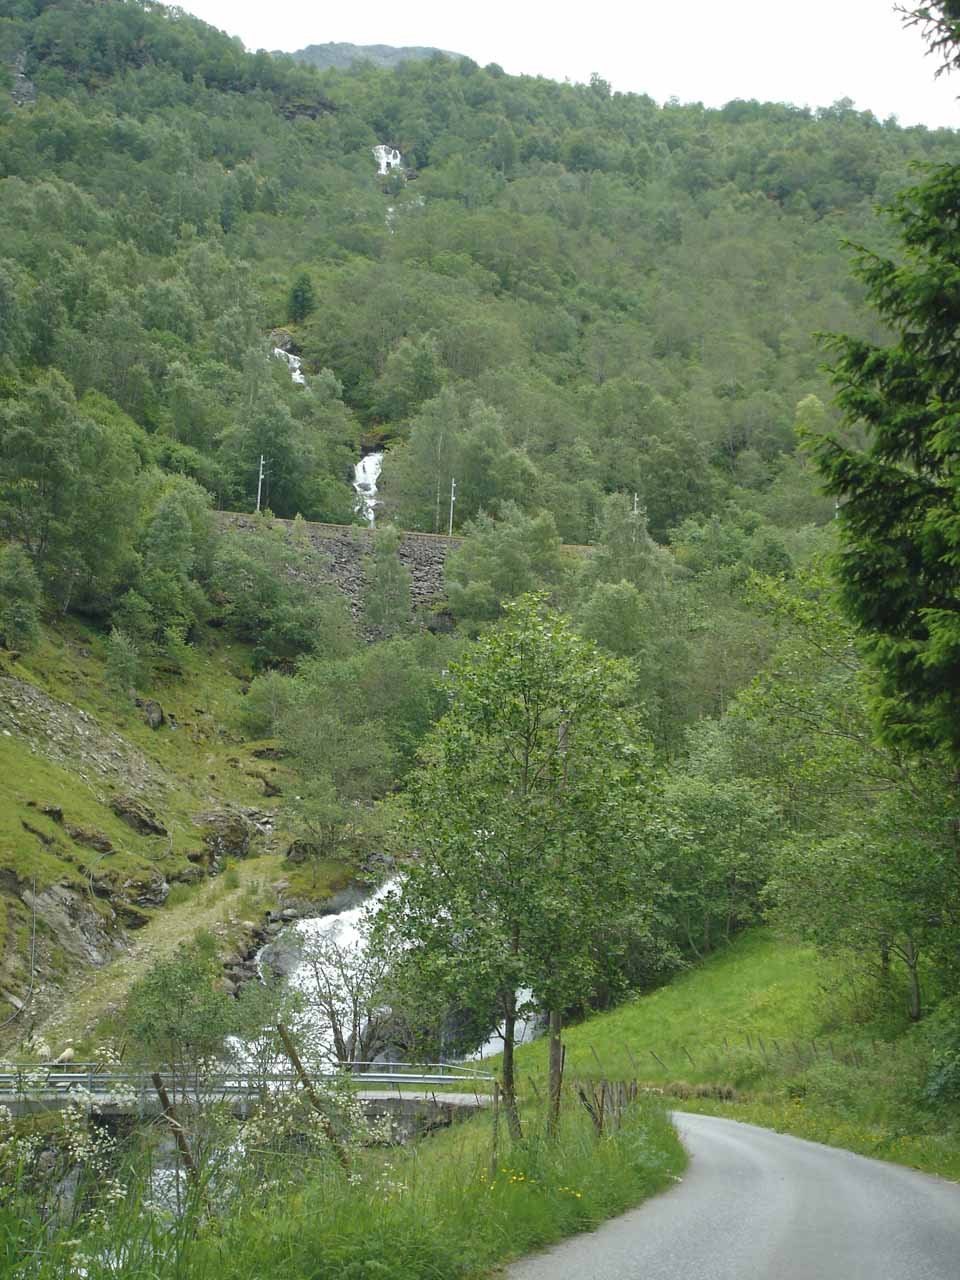 Looking back at some of the twisty narrow roads and cascades tumbling beneath them during our self-tour of Flamsdalen